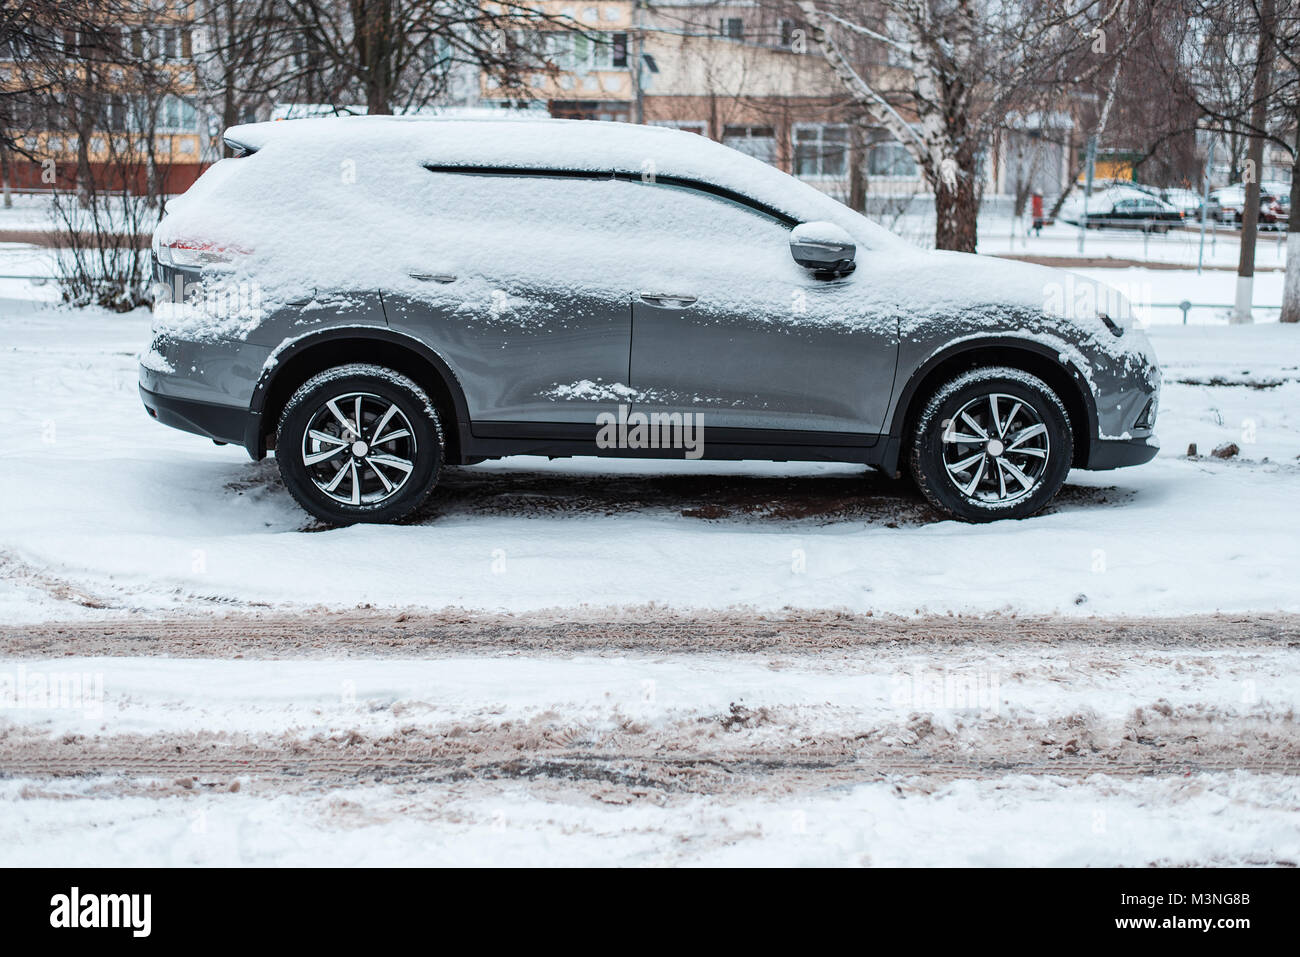 The Car In The Snow, Covered With A White Snowdrift.   Stock Image